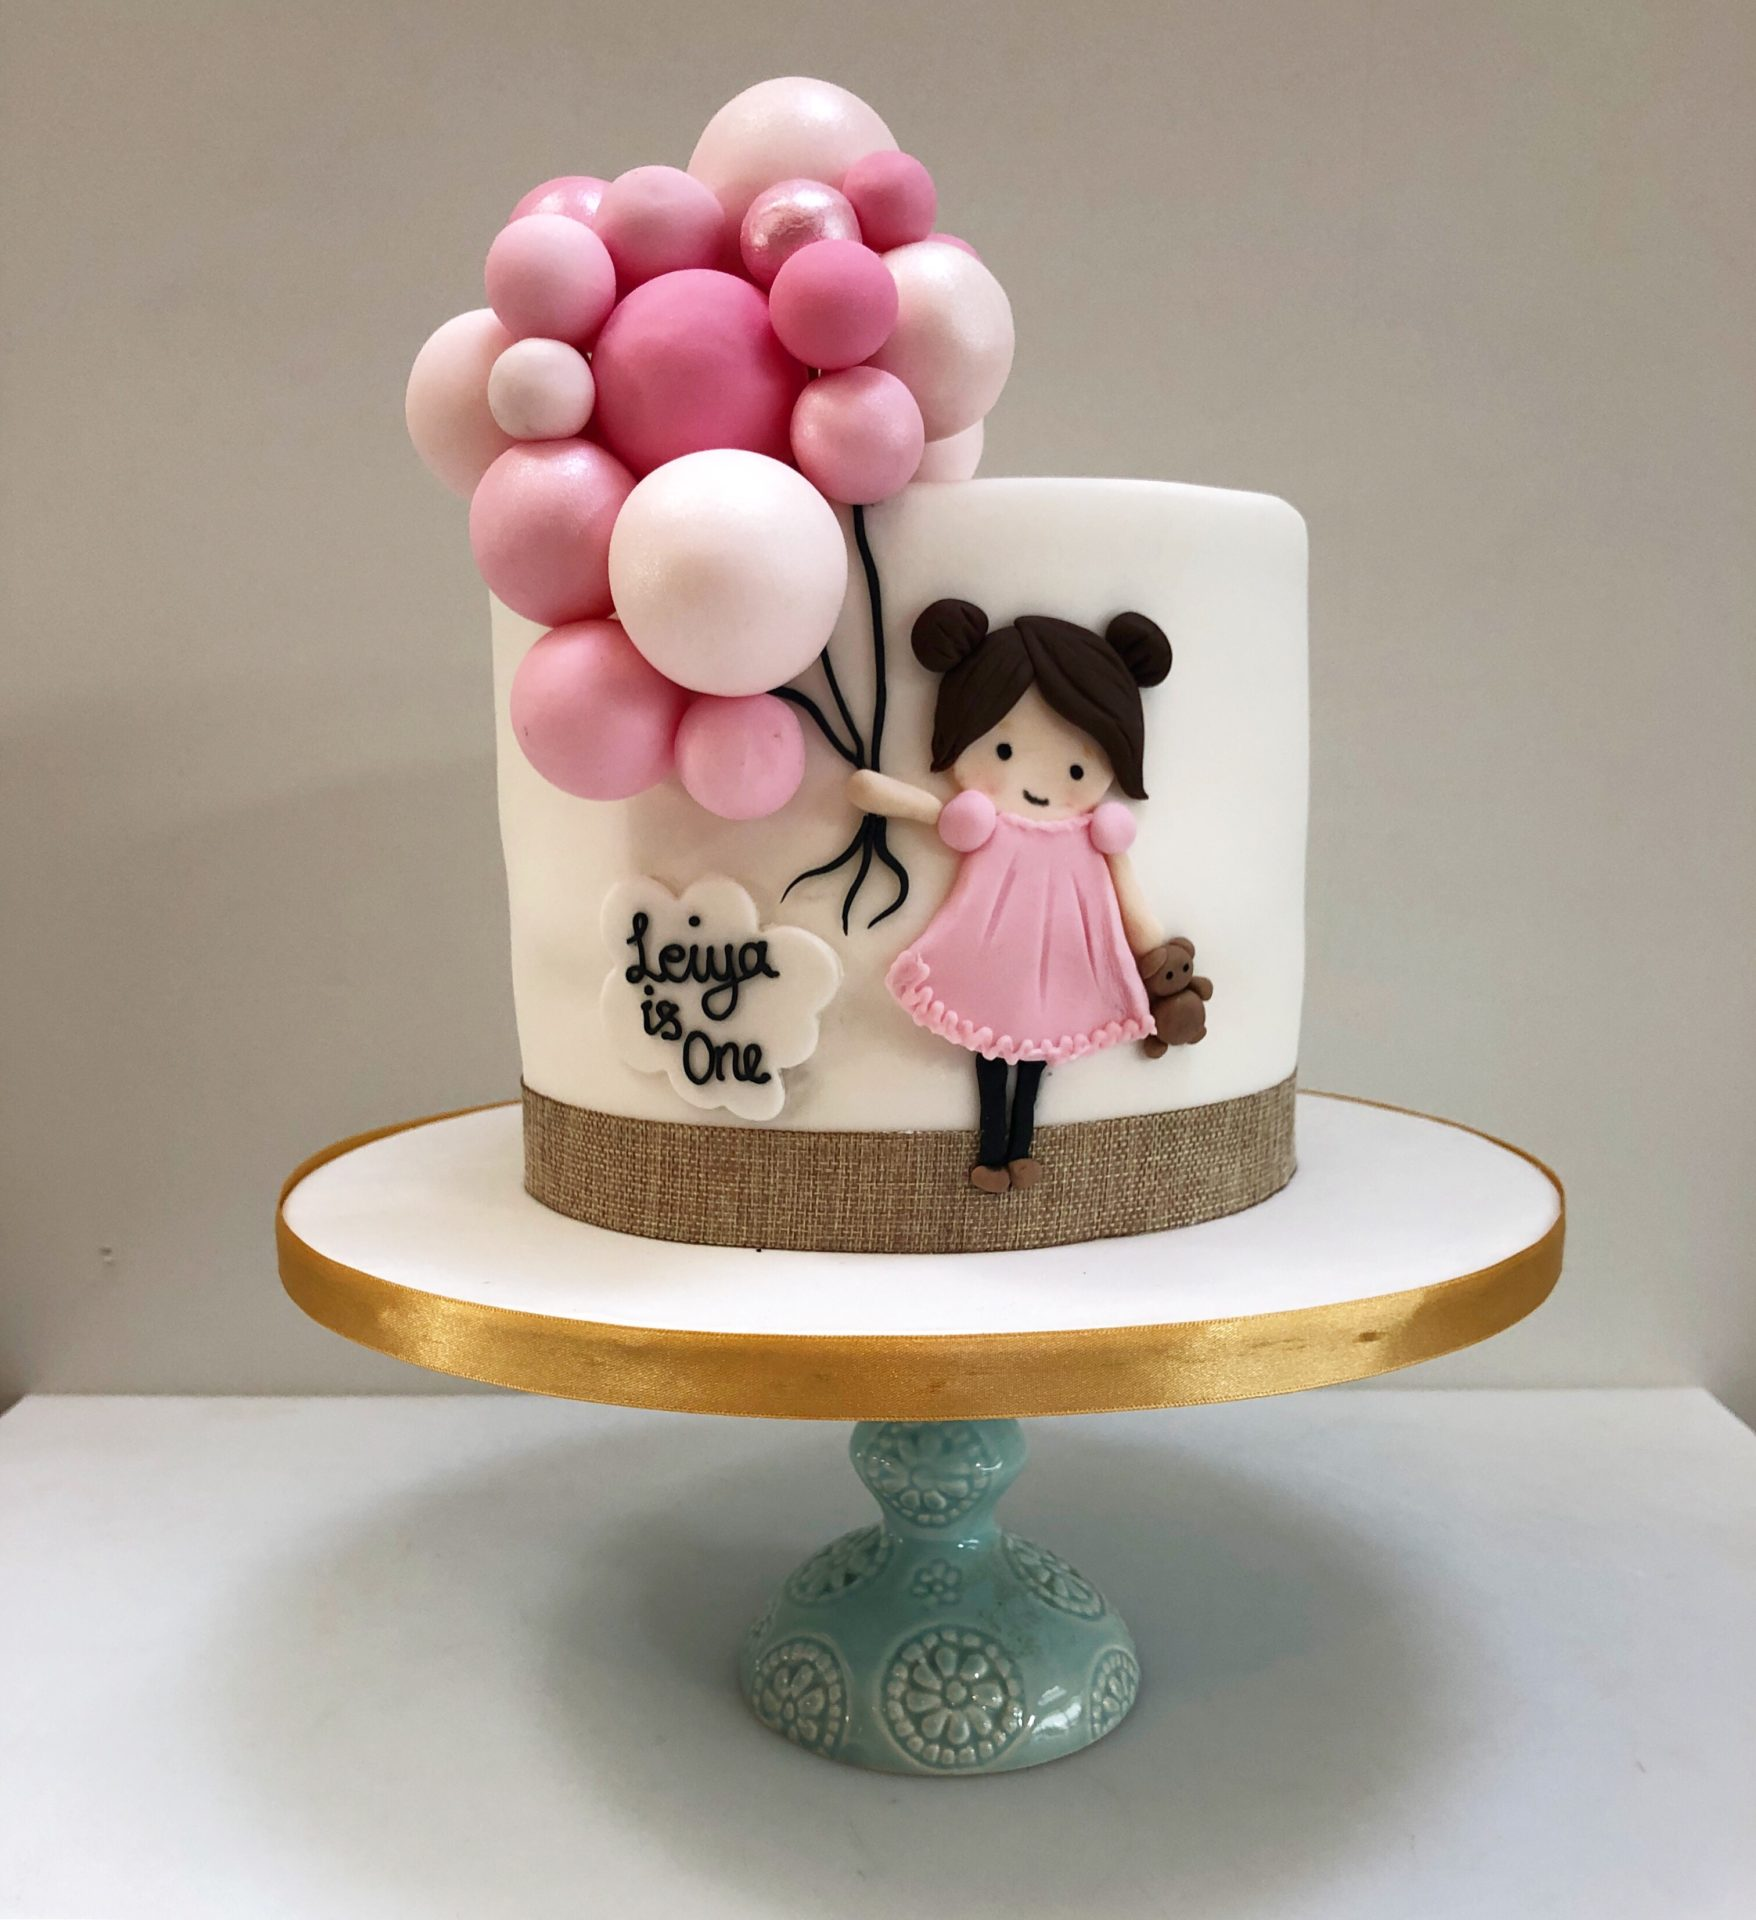 Admirable Bespoke Girl Birthday Cake London Etoile Bakery Funny Birthday Cards Online Fluifree Goldxyz